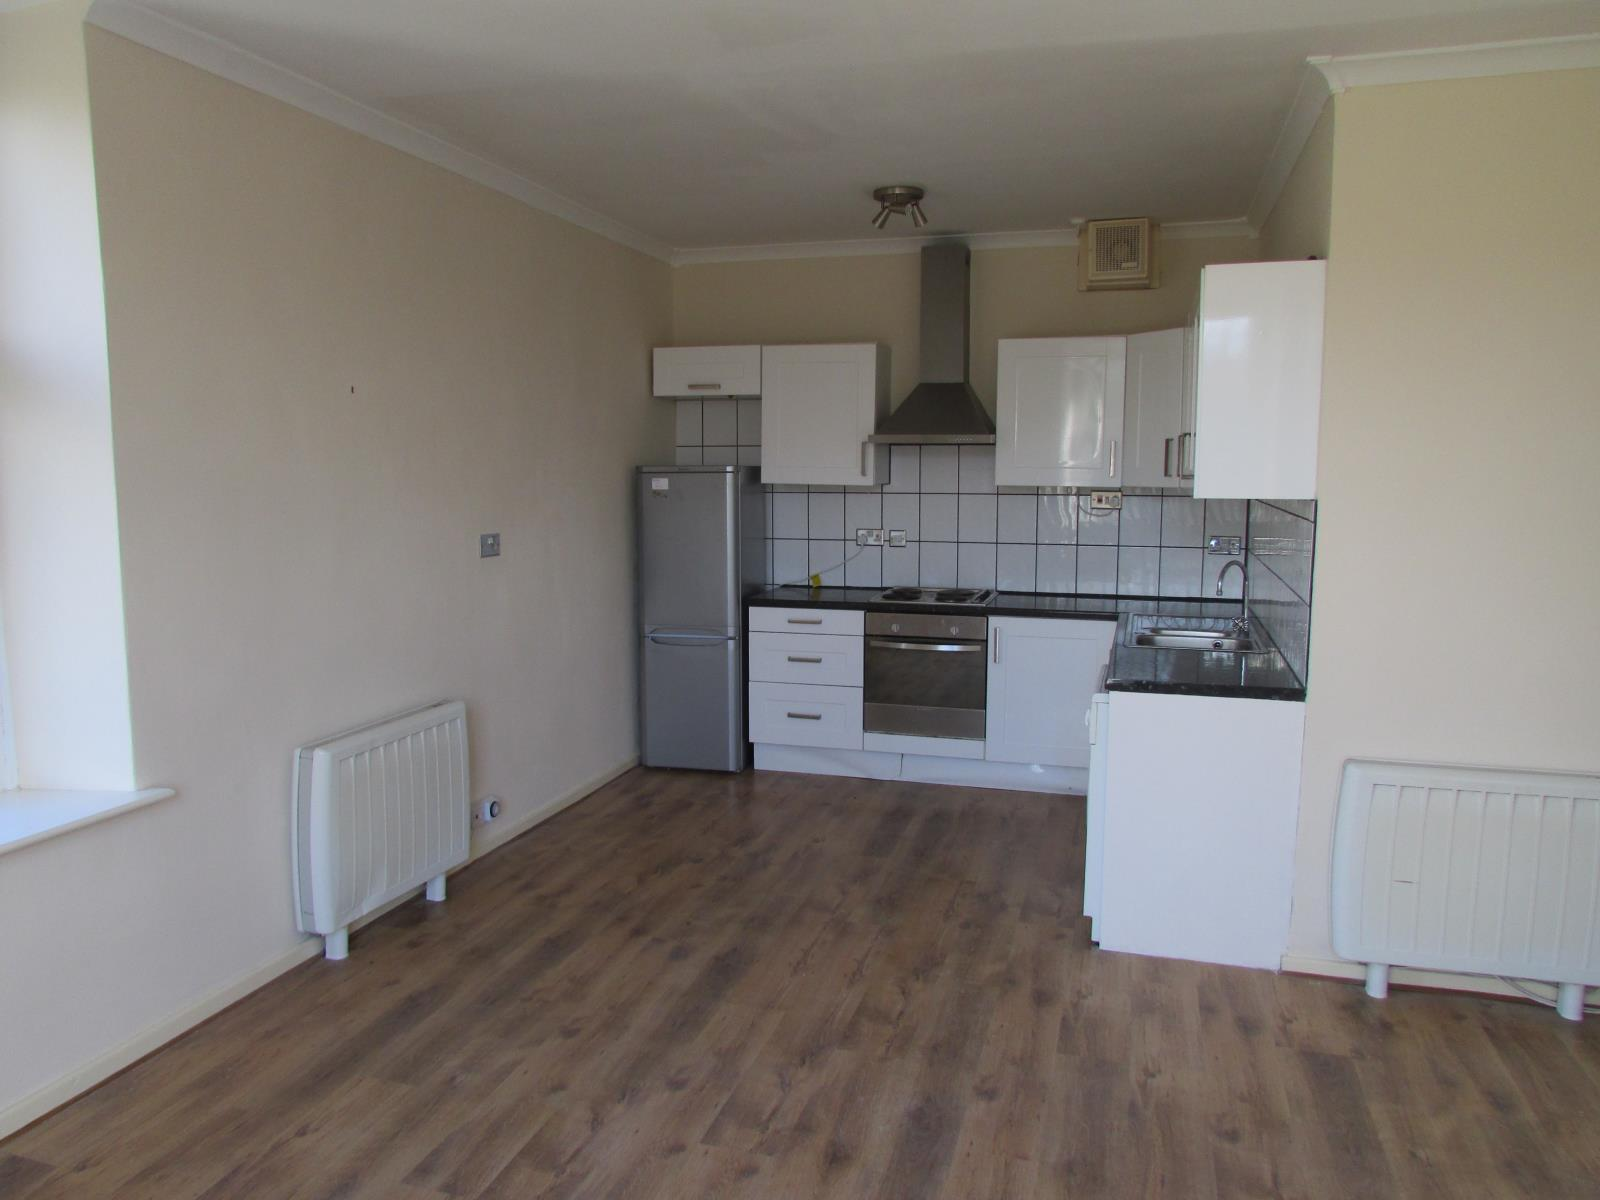 Apt 7 Riverside Court, Holmbridge, HD9 2AJ